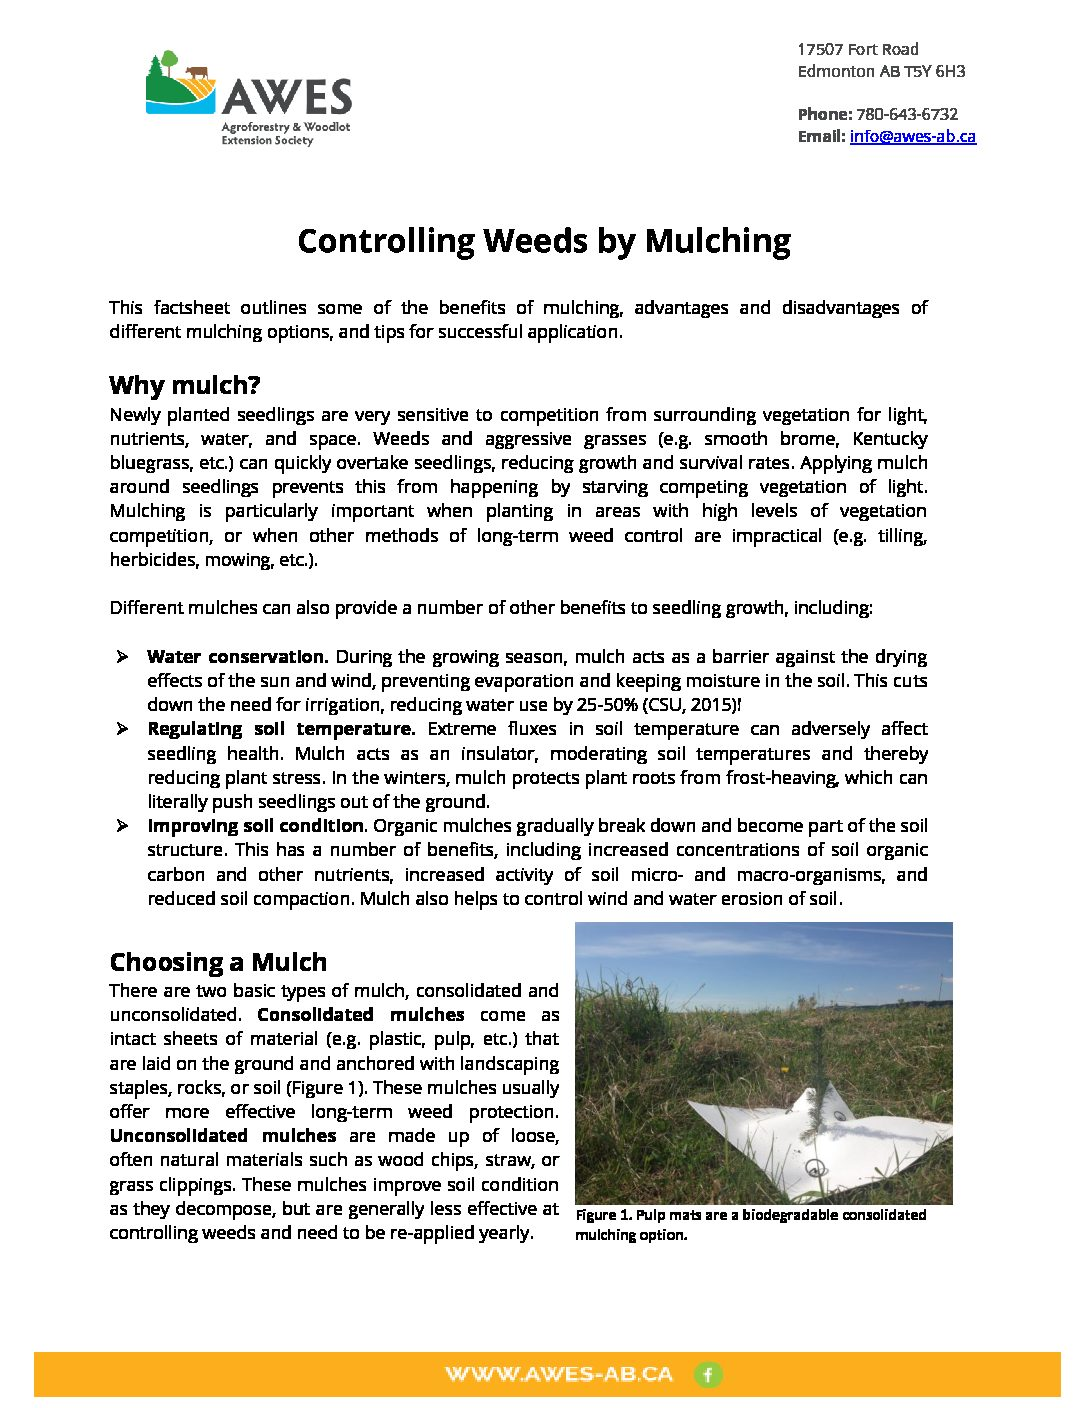 Controlling Weeds by Mulching – AWES | Agroforestry and